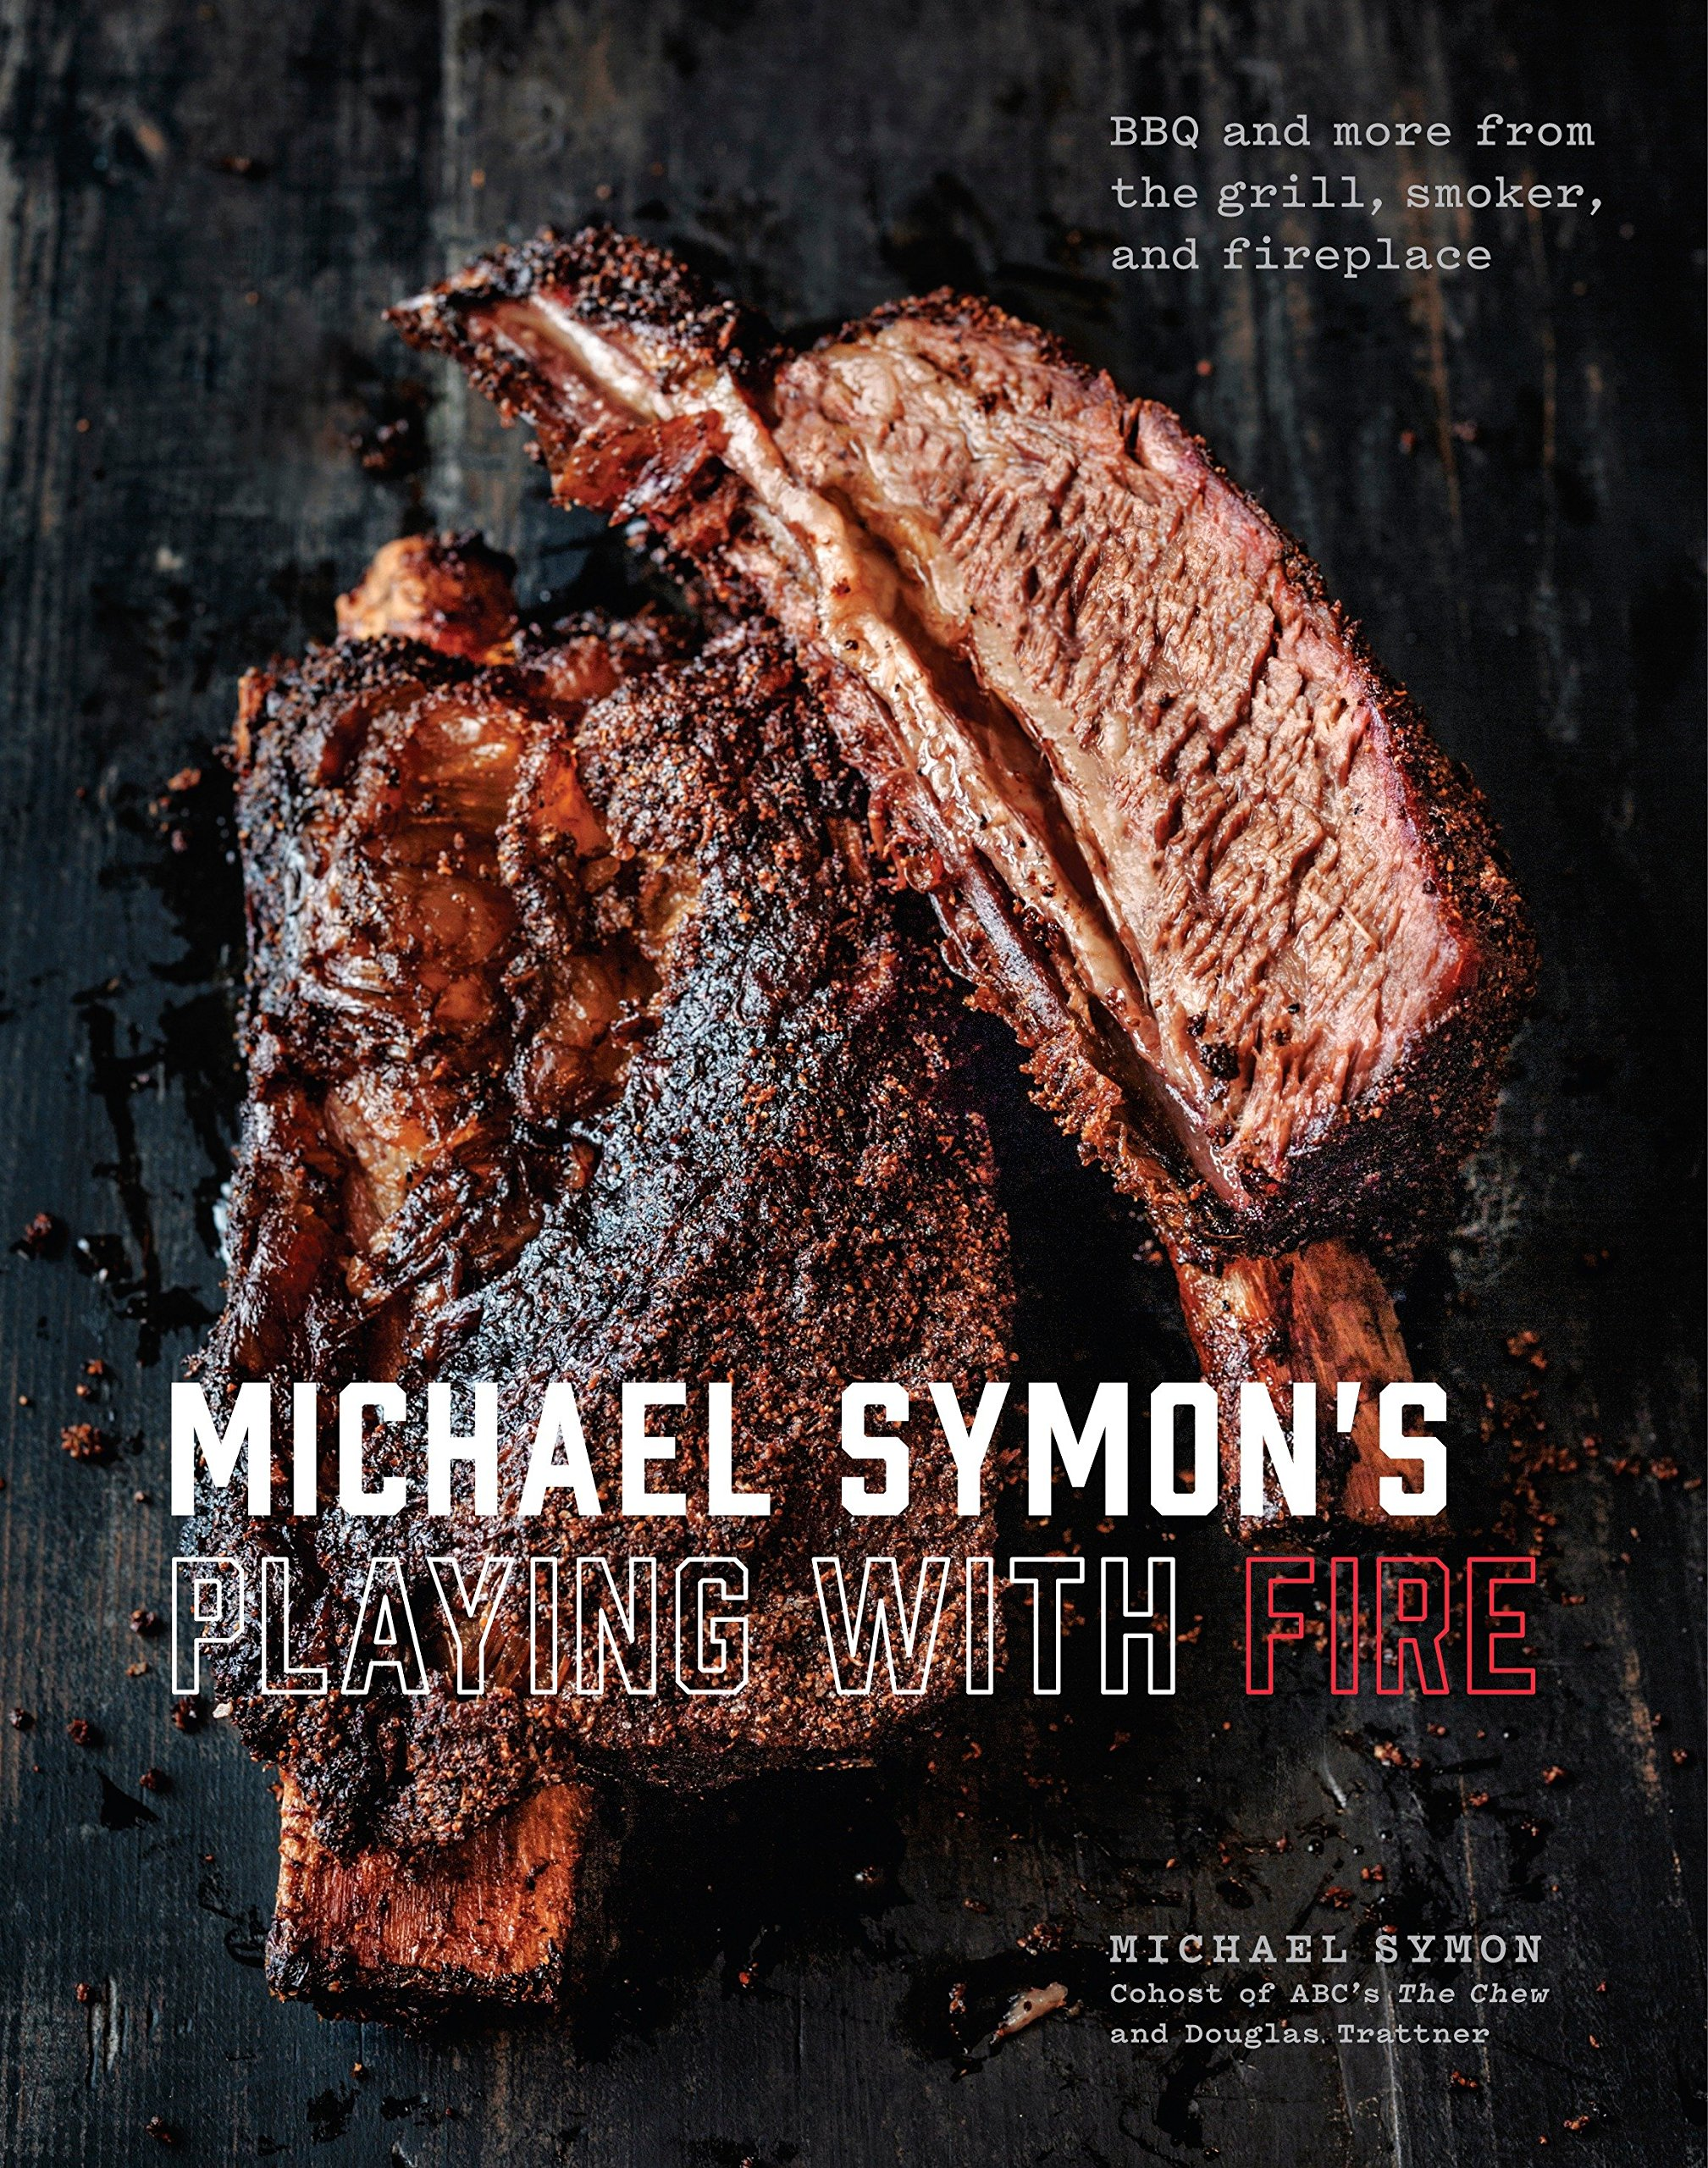 Michael Symon's Playing with Fire: BBQ and More from the Grill, Smoker, and Fireplace